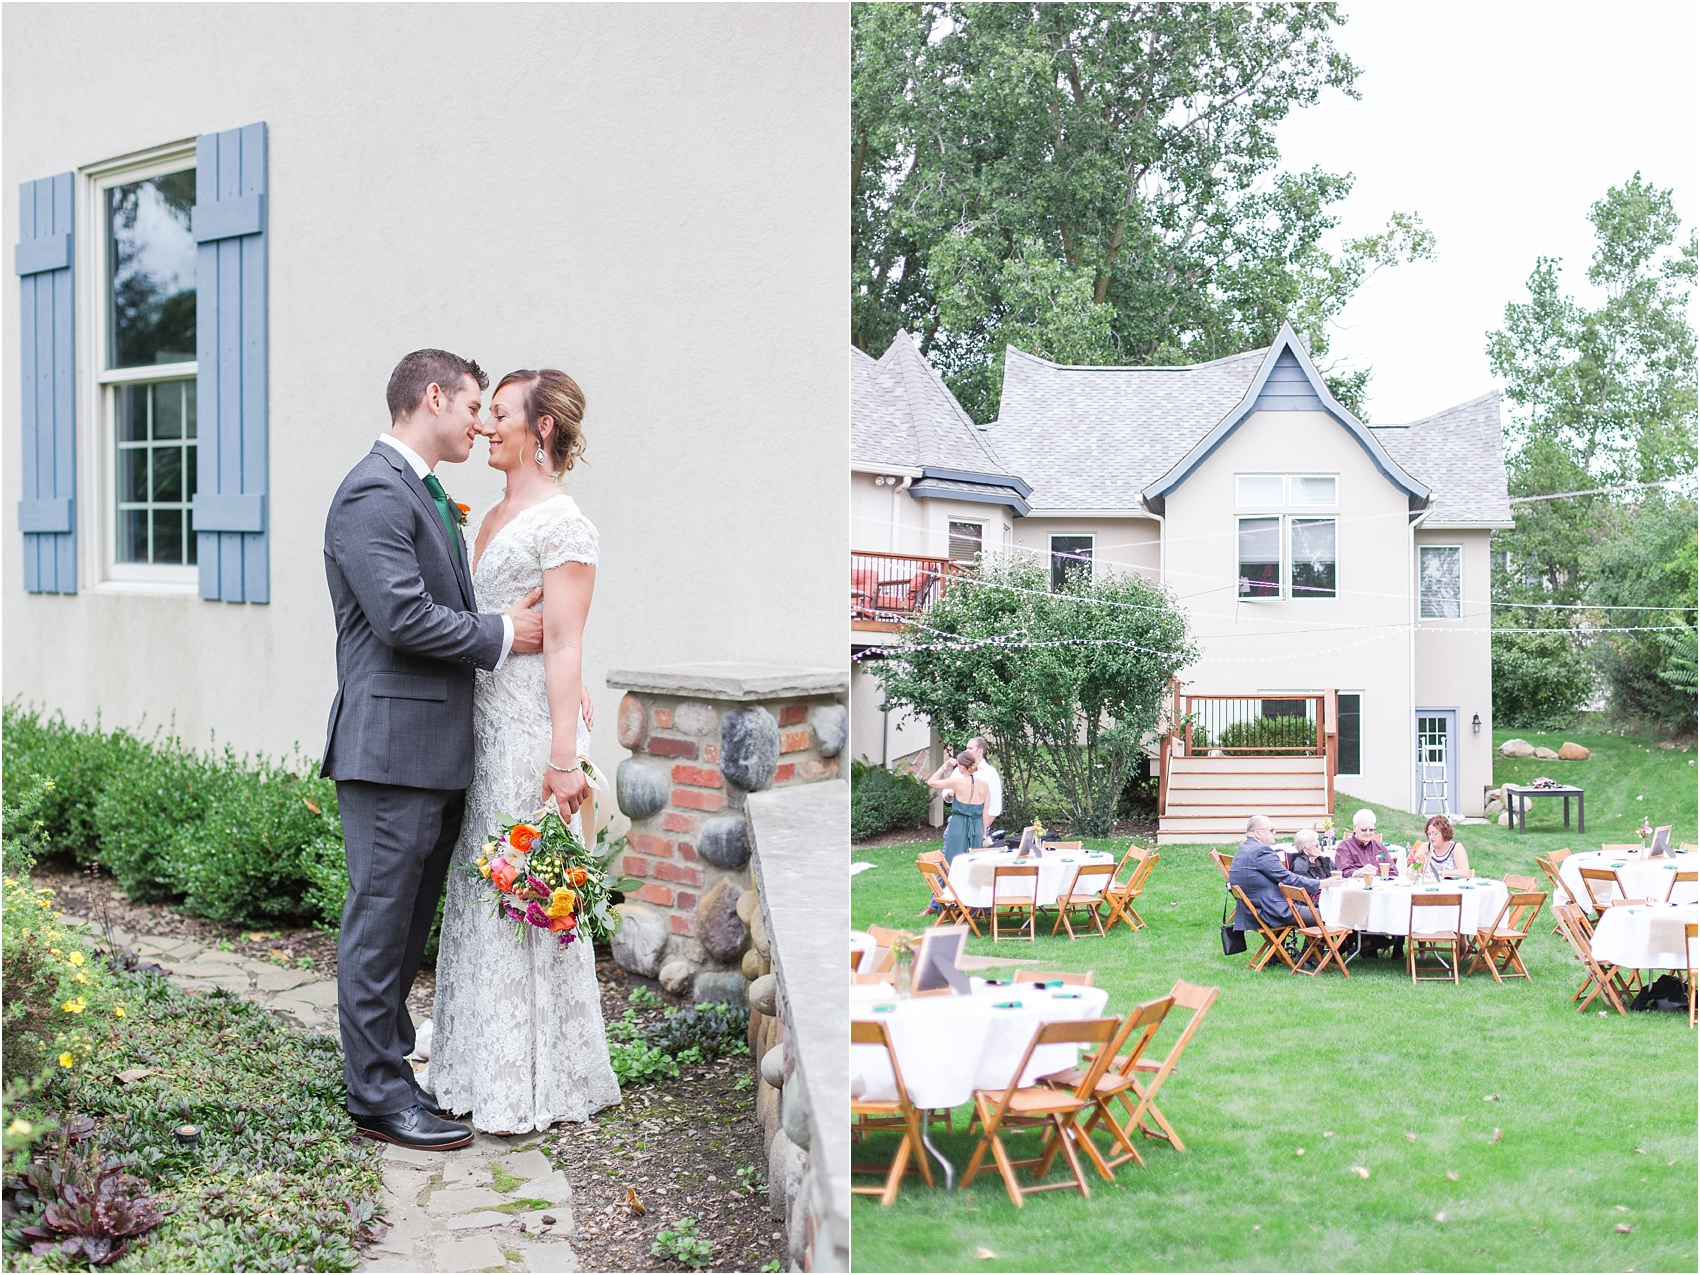 romantic-intimate-backyard-wedding-photos-at-private-estate-in-ann-arbor-mi-by-courtney-carolyn-photography_0067.jpg